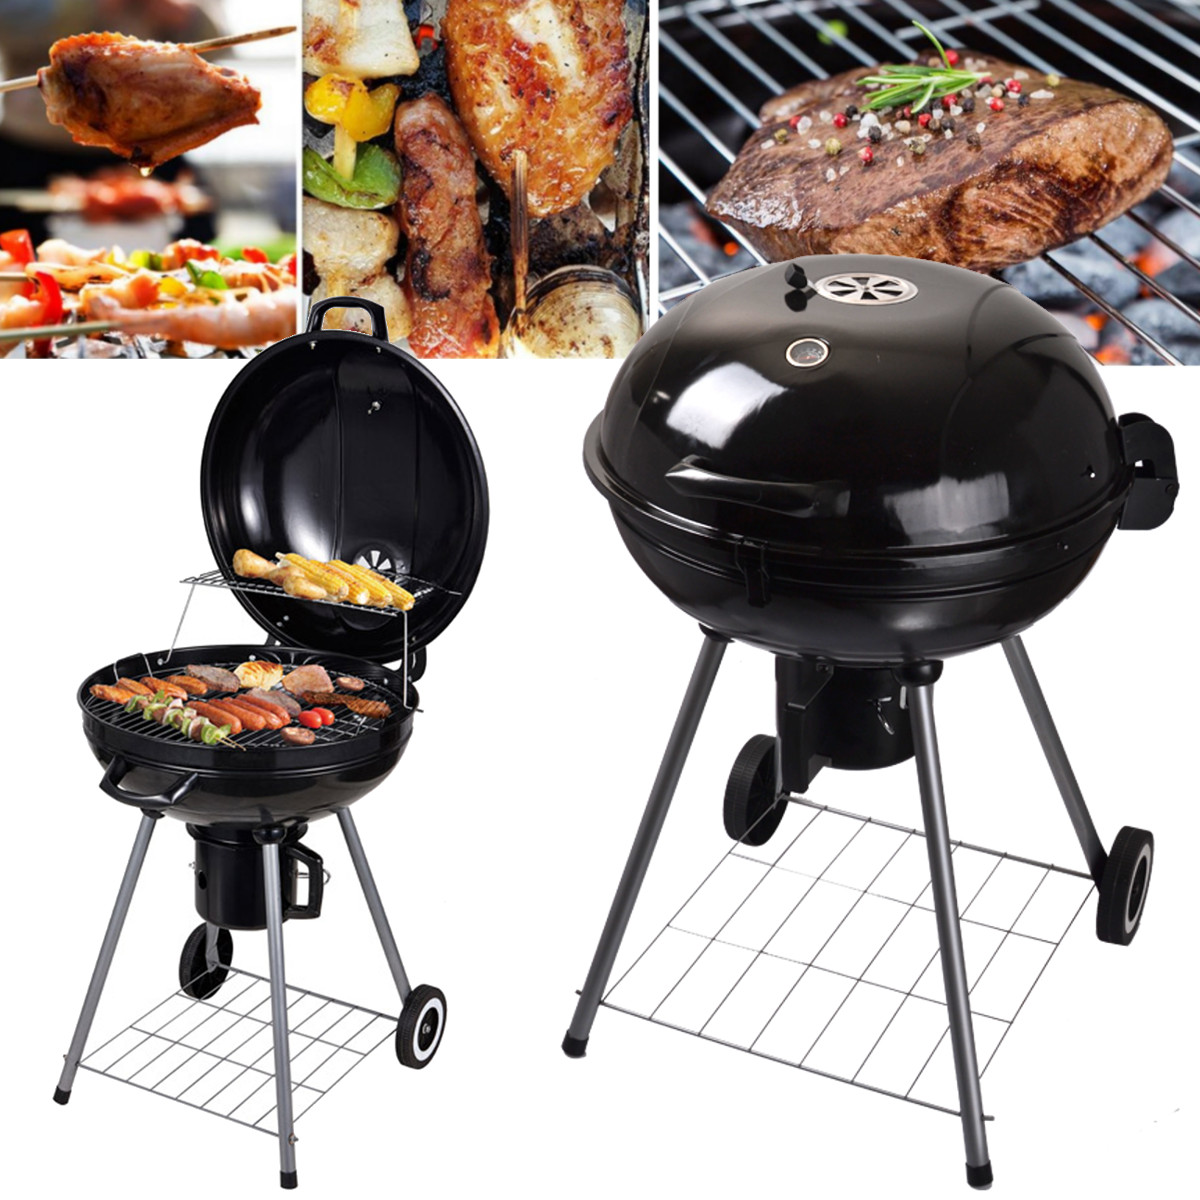 Здесь можно купить  Black Metal Portable Round BBQ Charcoal Grill Outdoor Tableware Barbecue Camping Picnic Cooker Camping Hiking Rotisserie Part  Спорт и развлечения